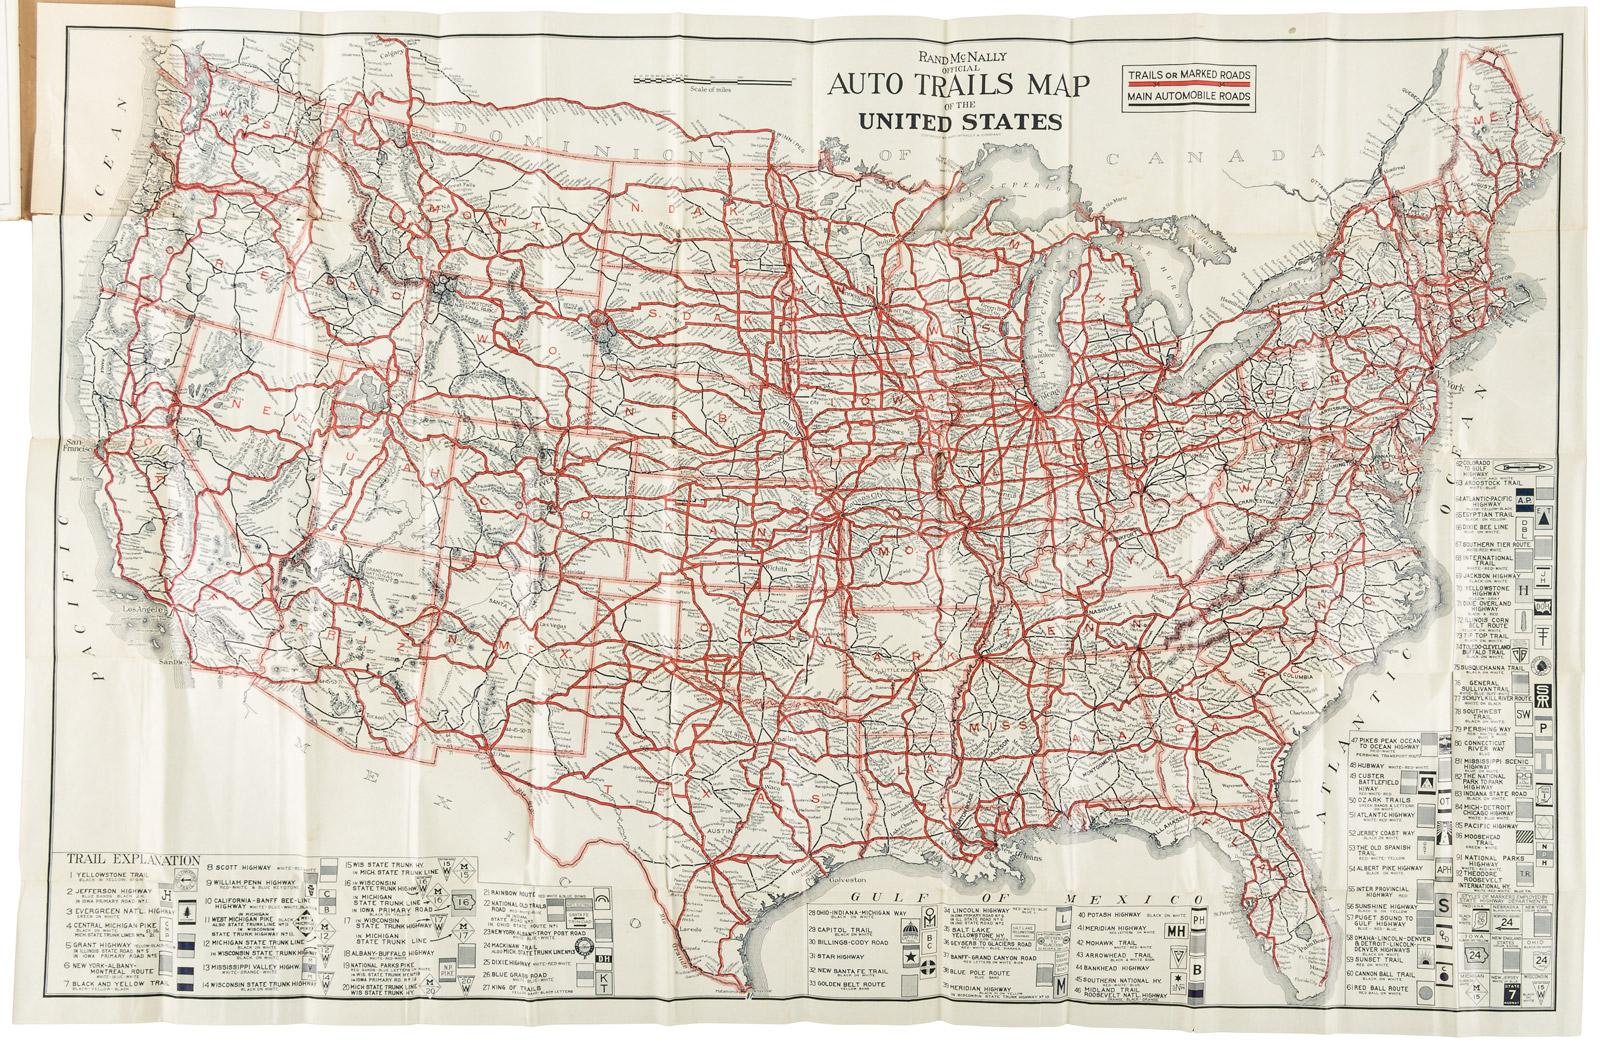 Rand McNally official auto trails map of the United States ... on usa map with states, map of us cell phone radiation, please name 52 states, united states 52 states, name all 52 states, accurate of usa states, 52 american states, list 52 states, was there ever 52 states, time zone for 52 states,